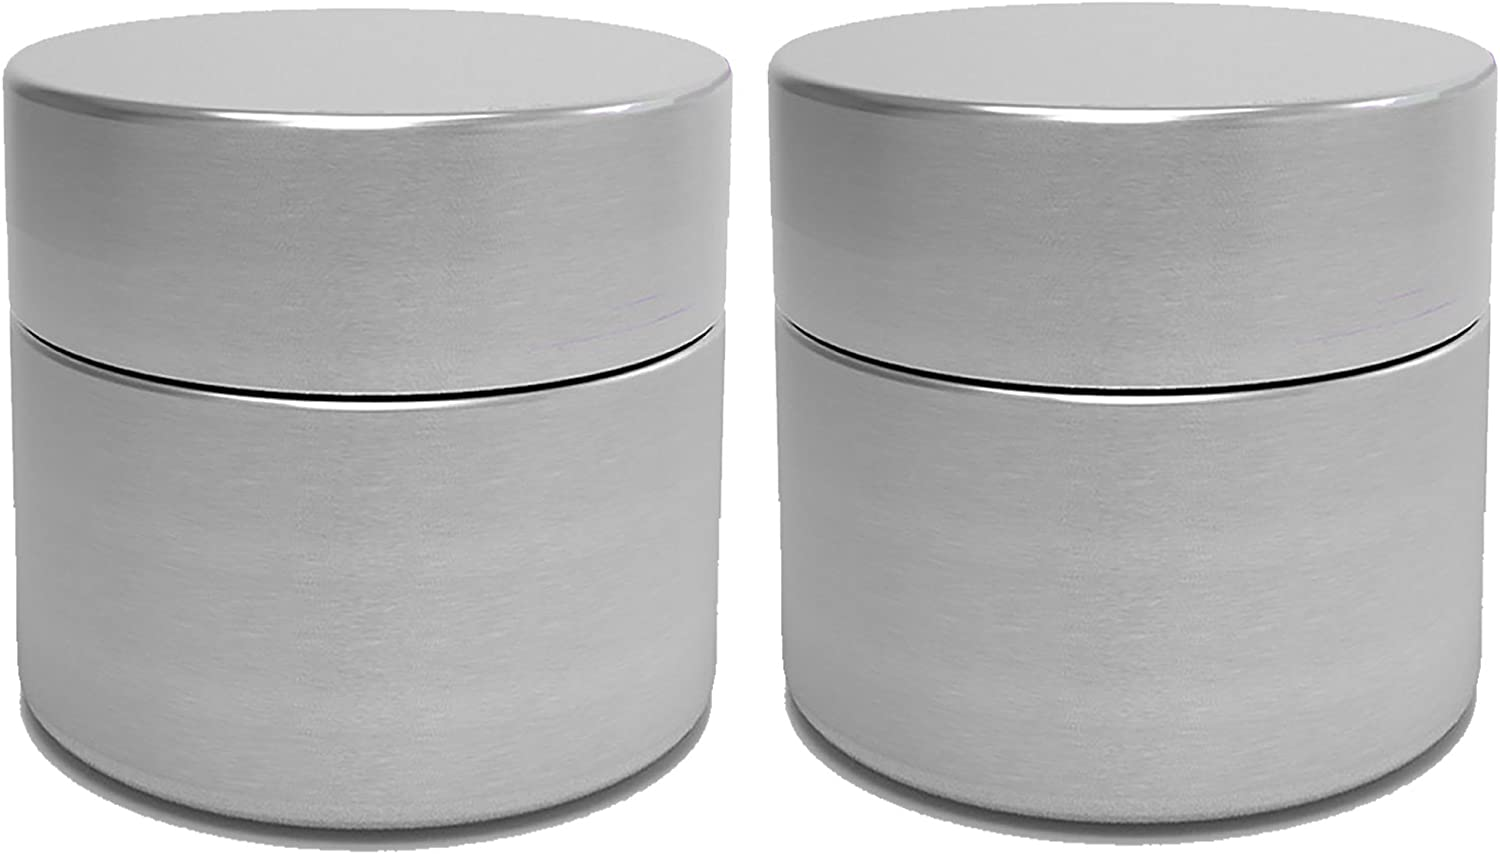 Herb Stash Jars | 2 Solid Aluminum Airtight Smell Proof Containers #1 Best Way To Preserve Spices & Herbs